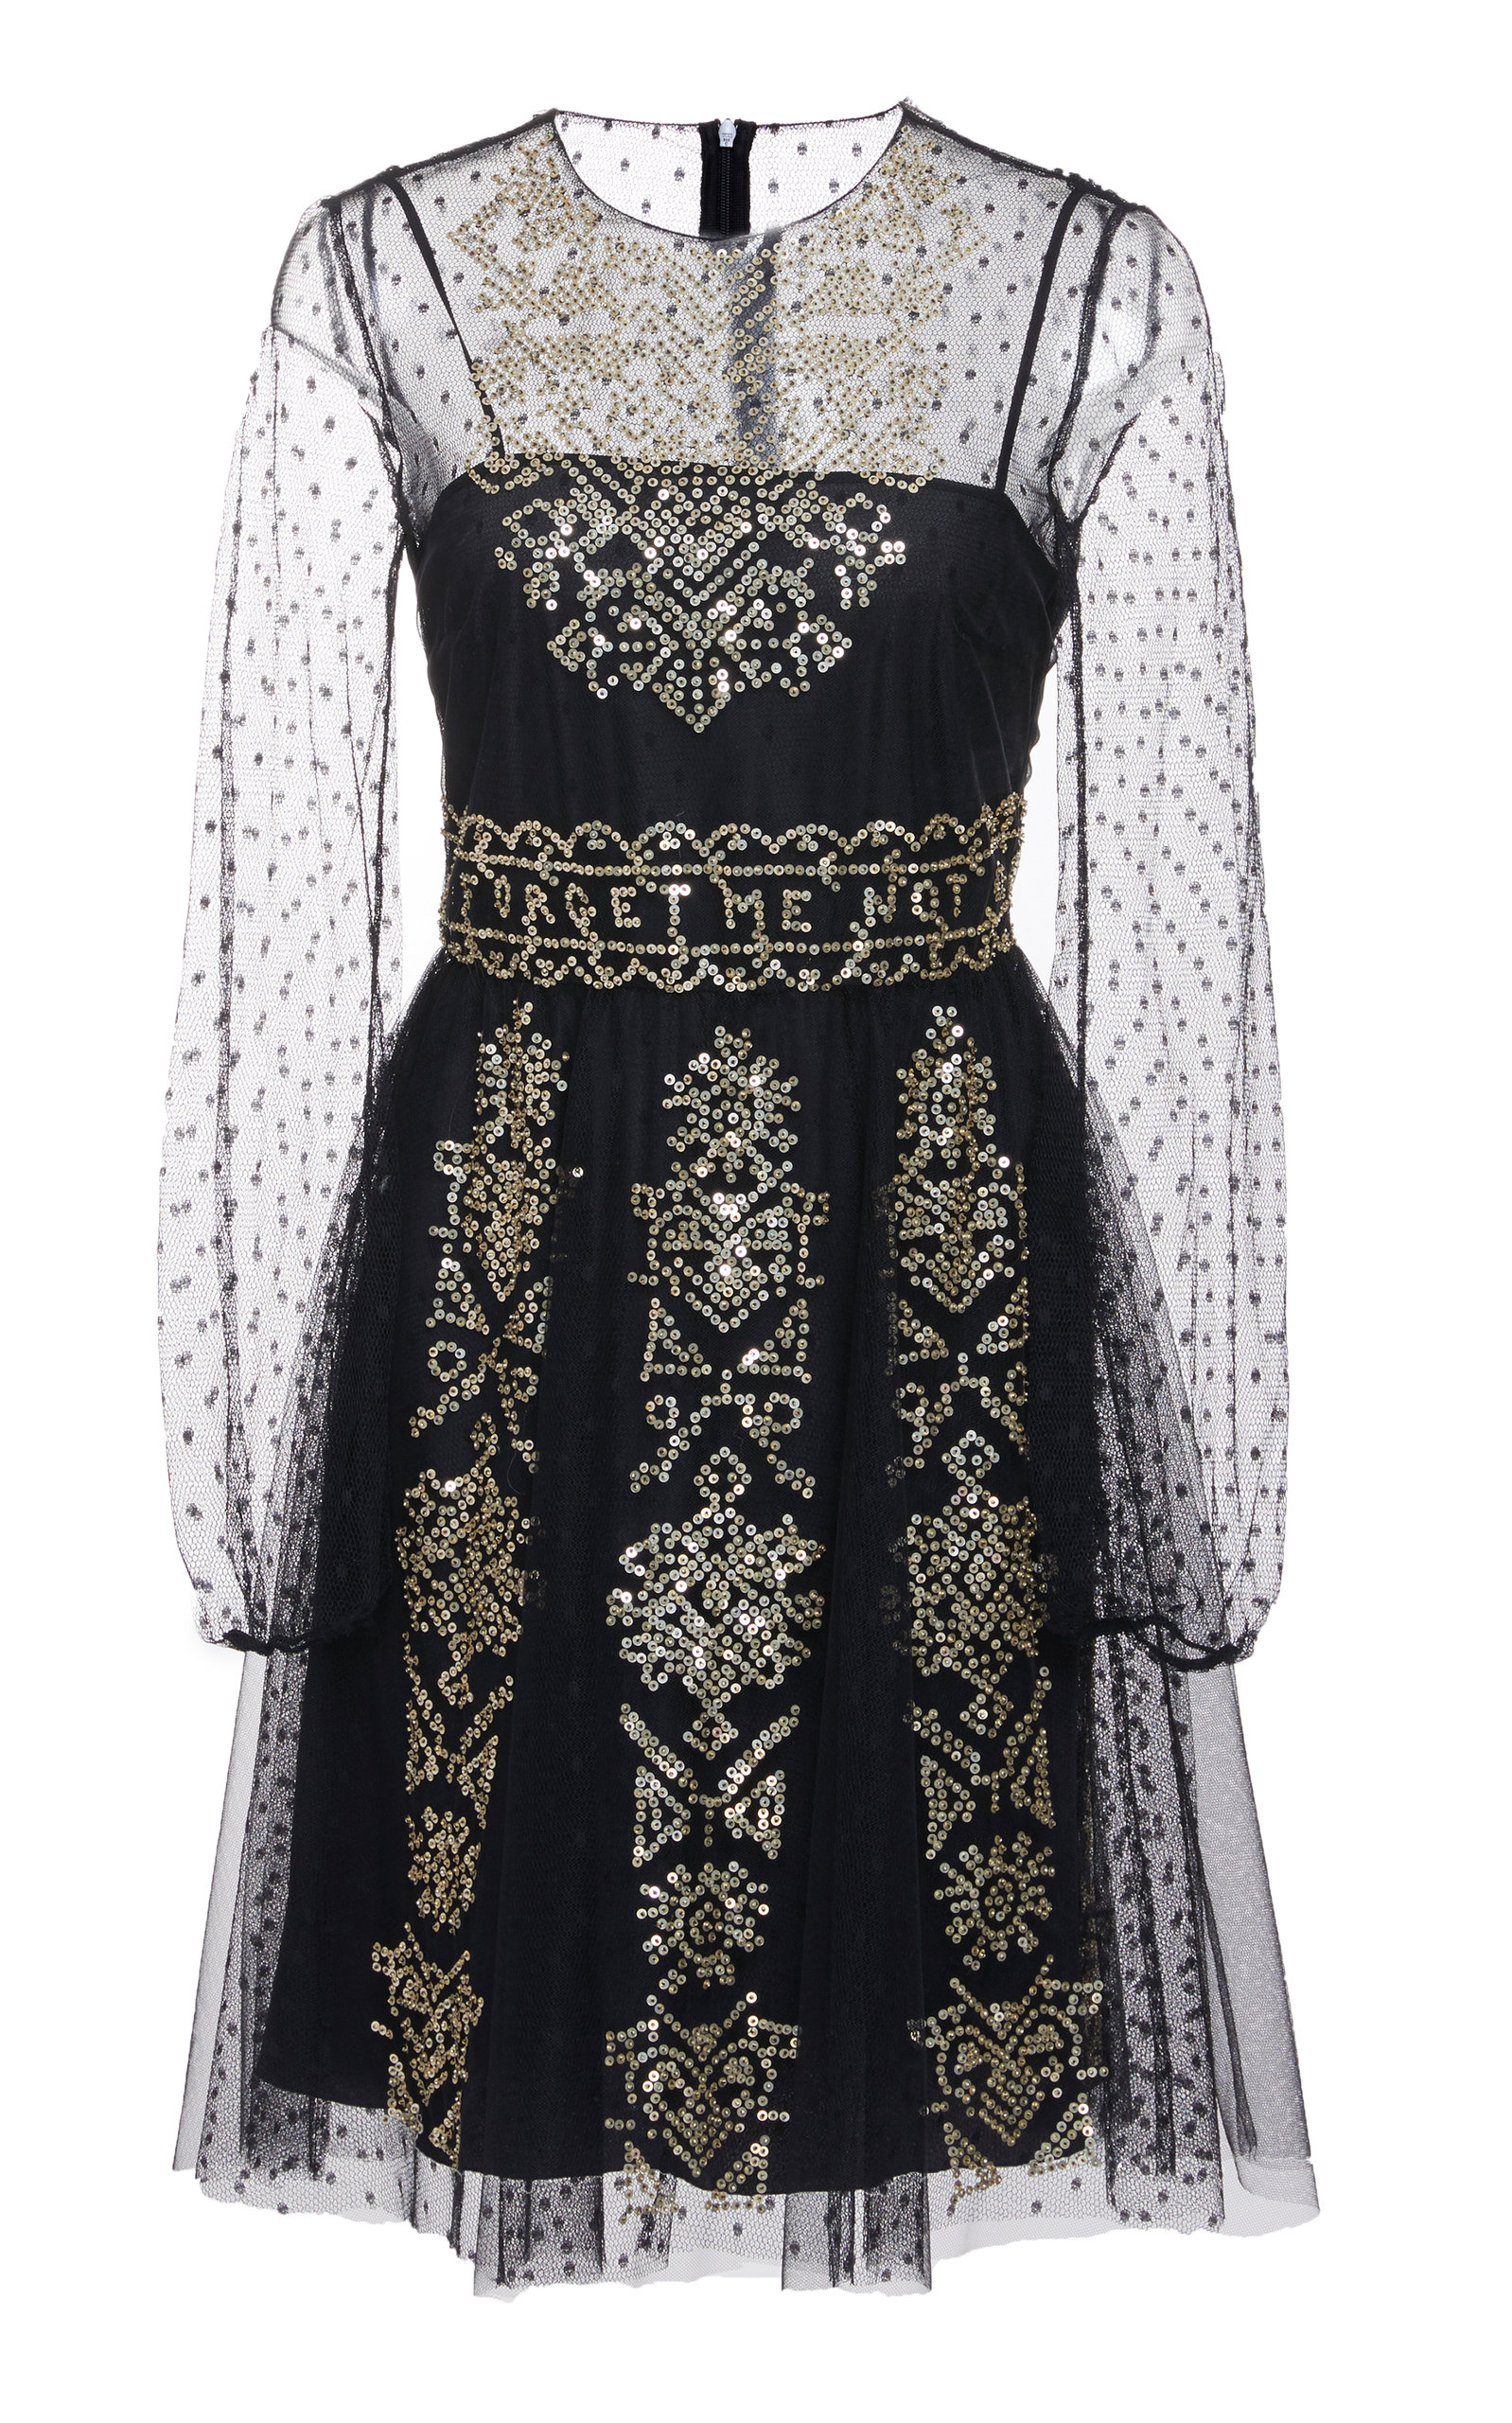 Red Valentino Forget Me Not dress Sale Online Cheap Authentic Outlet EOxlGwqpI